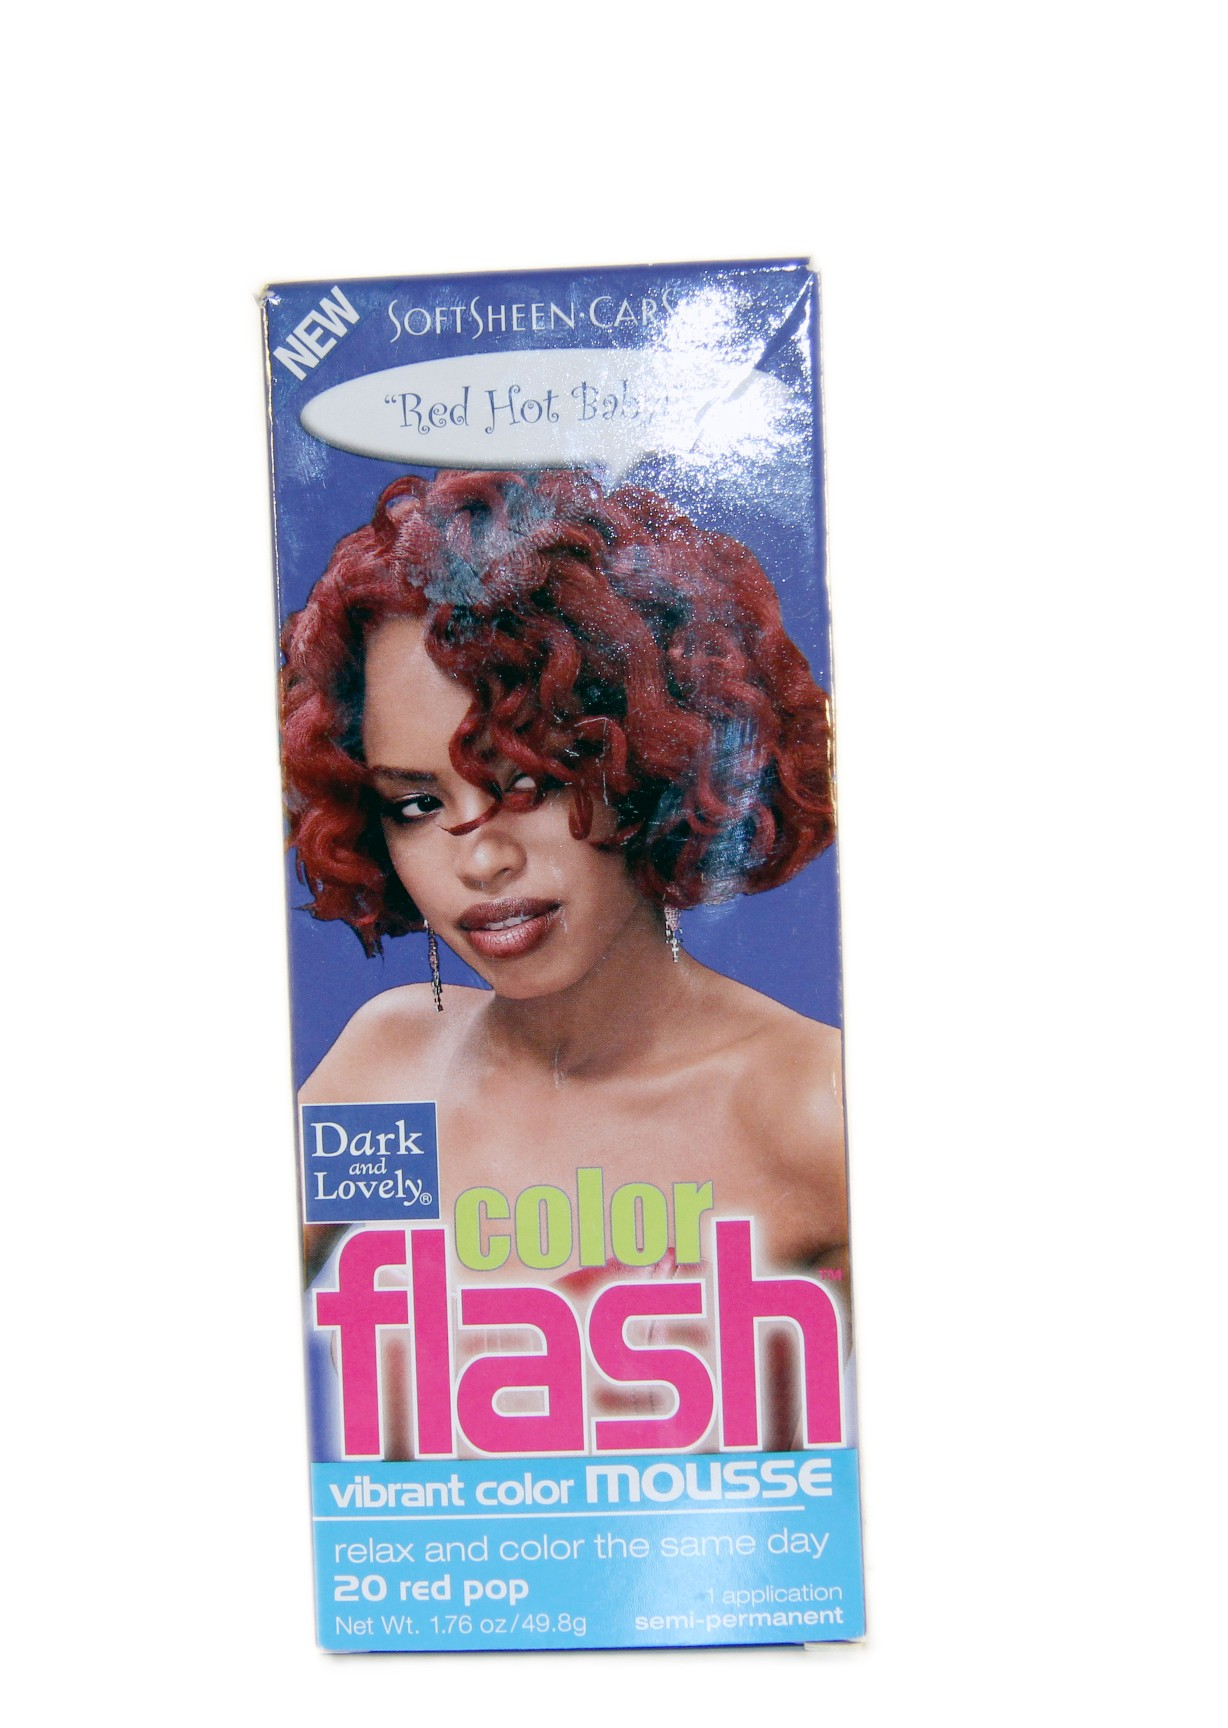 Dark And Lovely color flash 20 red pop - Lady Edna